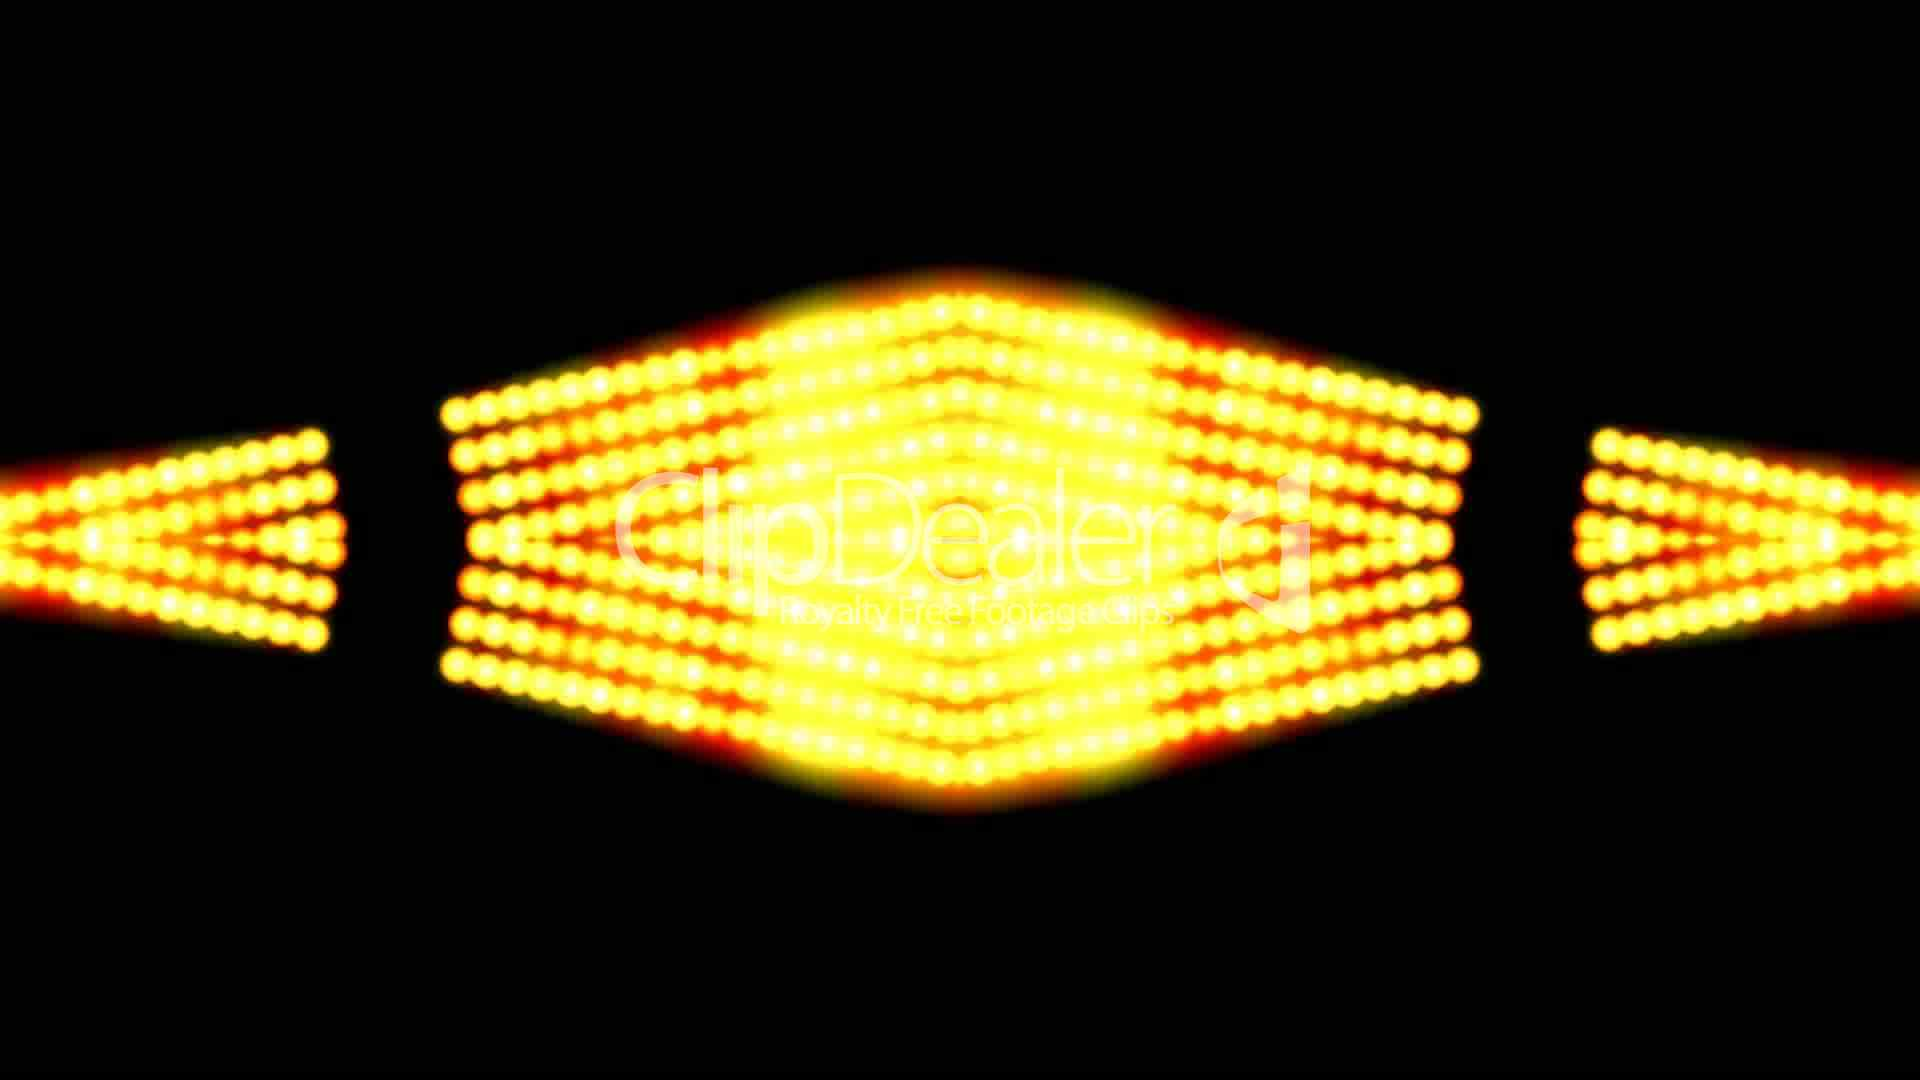 flare golden beads shaped neon lightsunlightstage